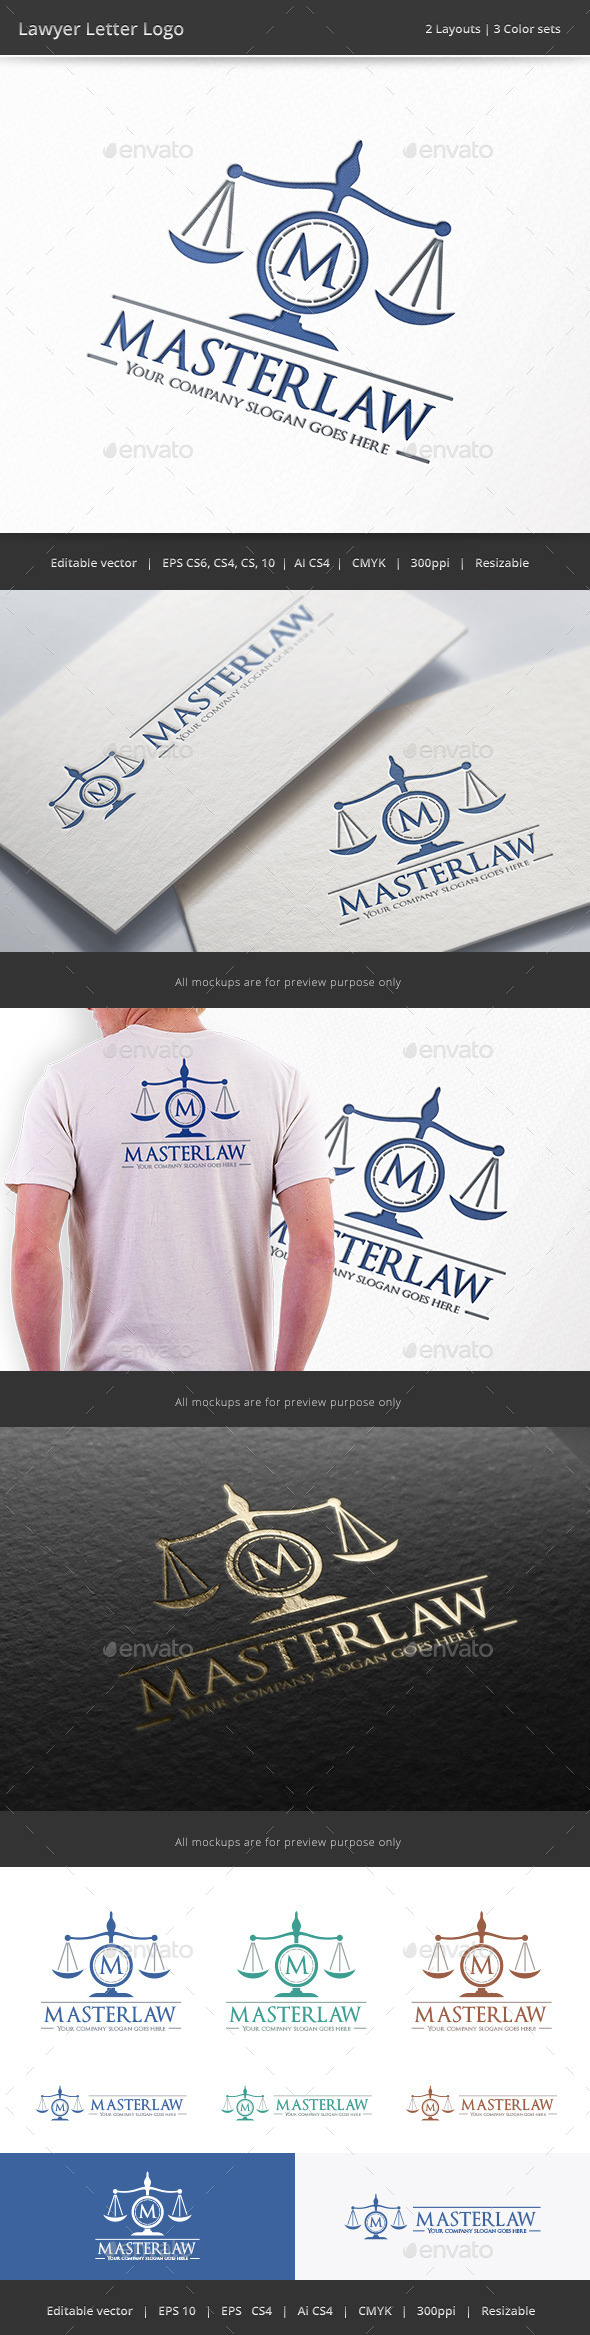 Lawyer Letter Logo - Objects Logo Templates